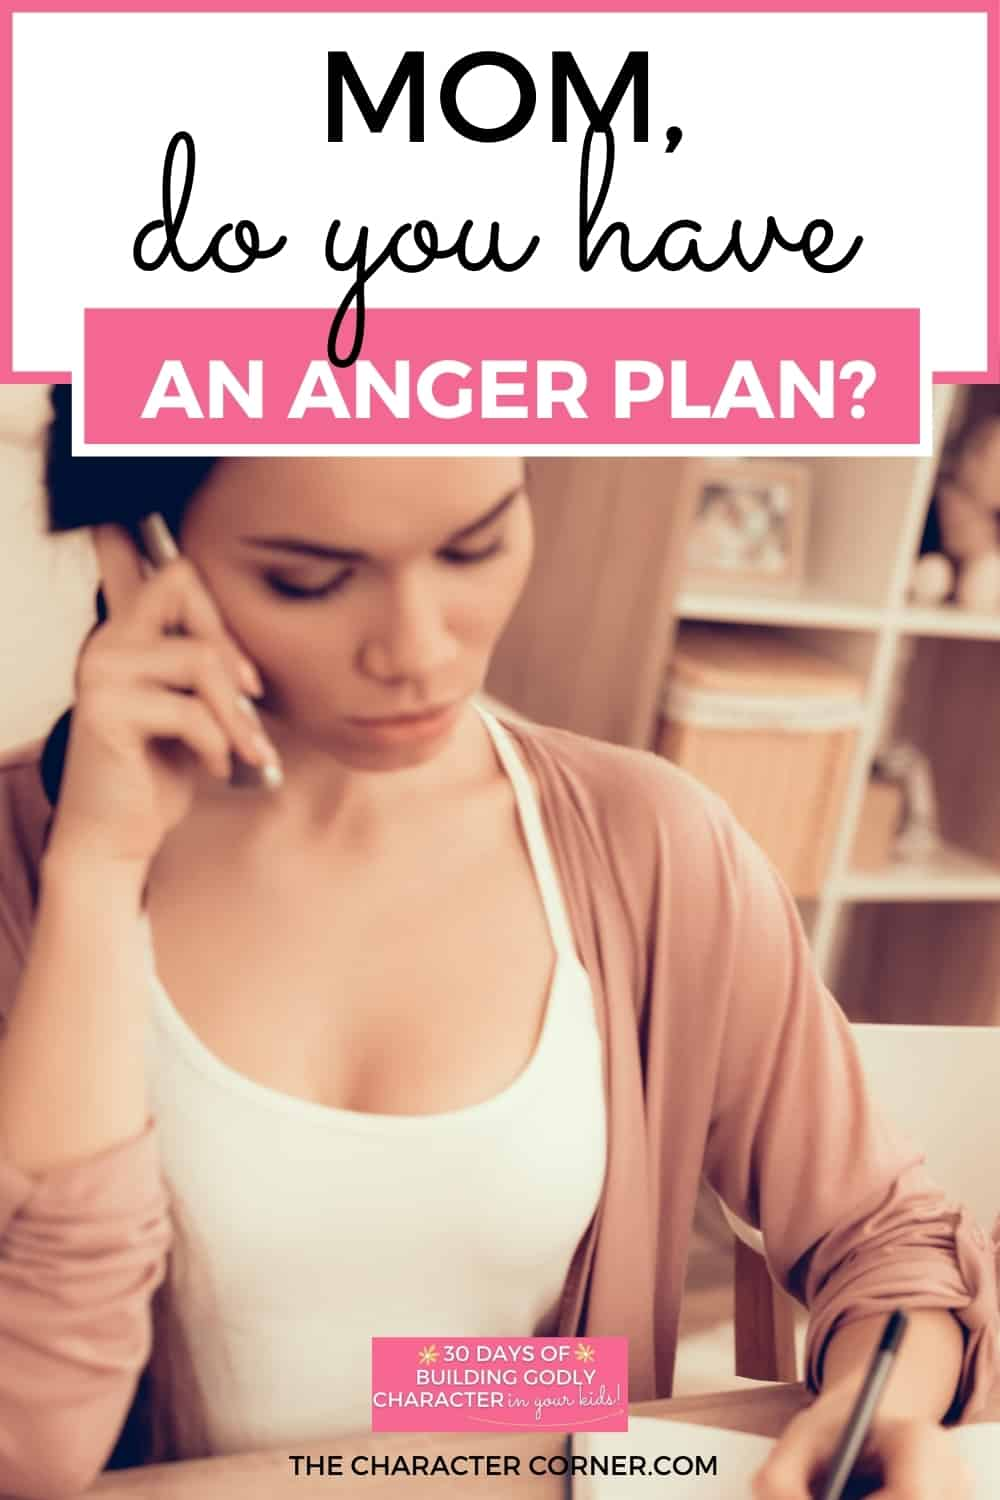 Mom talking on phone while daughter is upset text on image reads: Mom, Do You Have An Anger Plan?